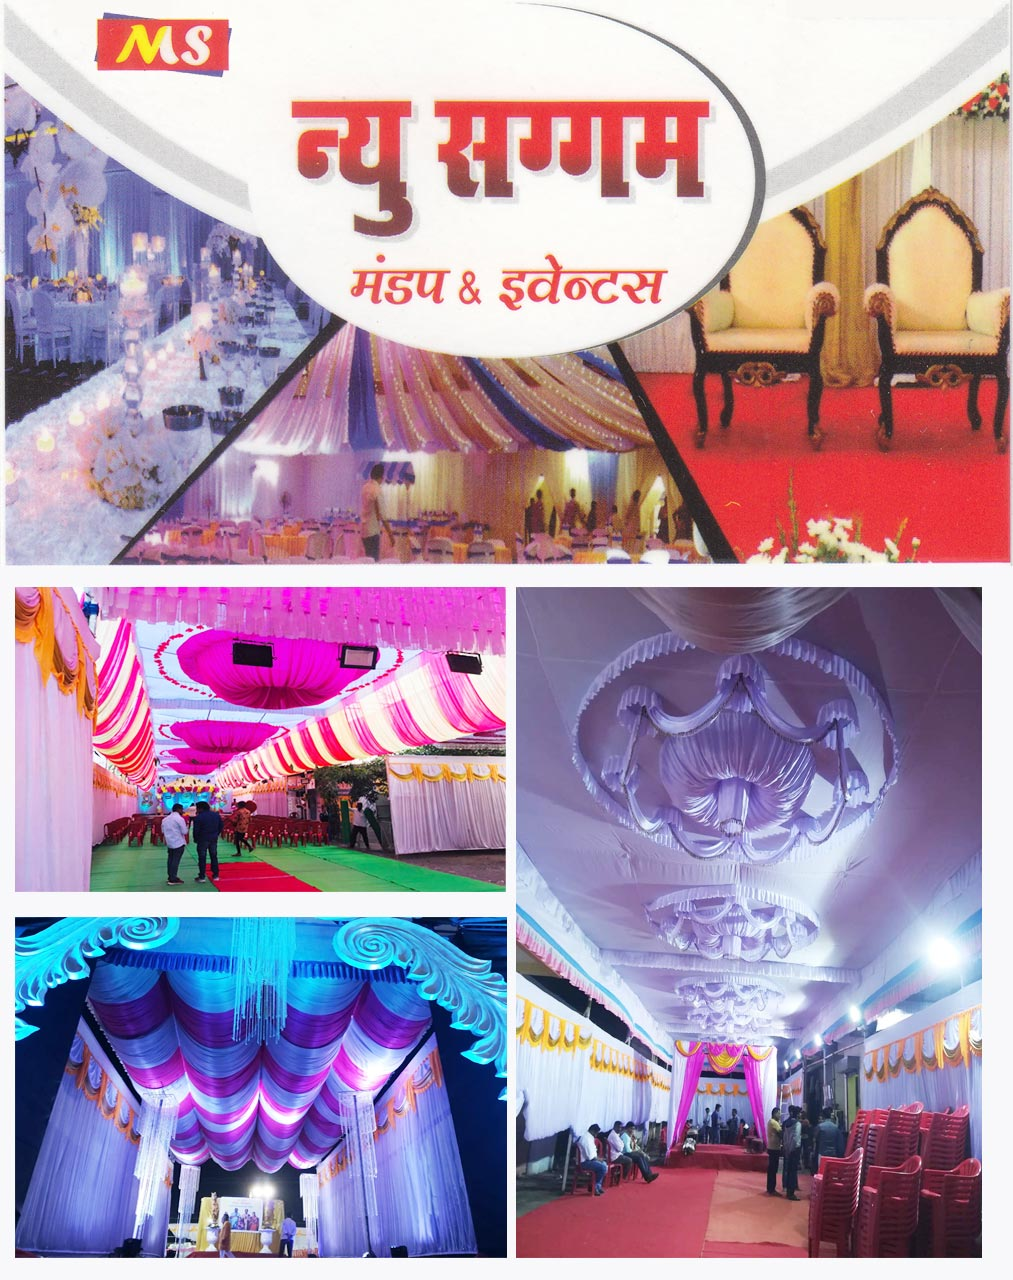 NEW SAGGAM MANDAP & EVENTS | SolapurMall.com